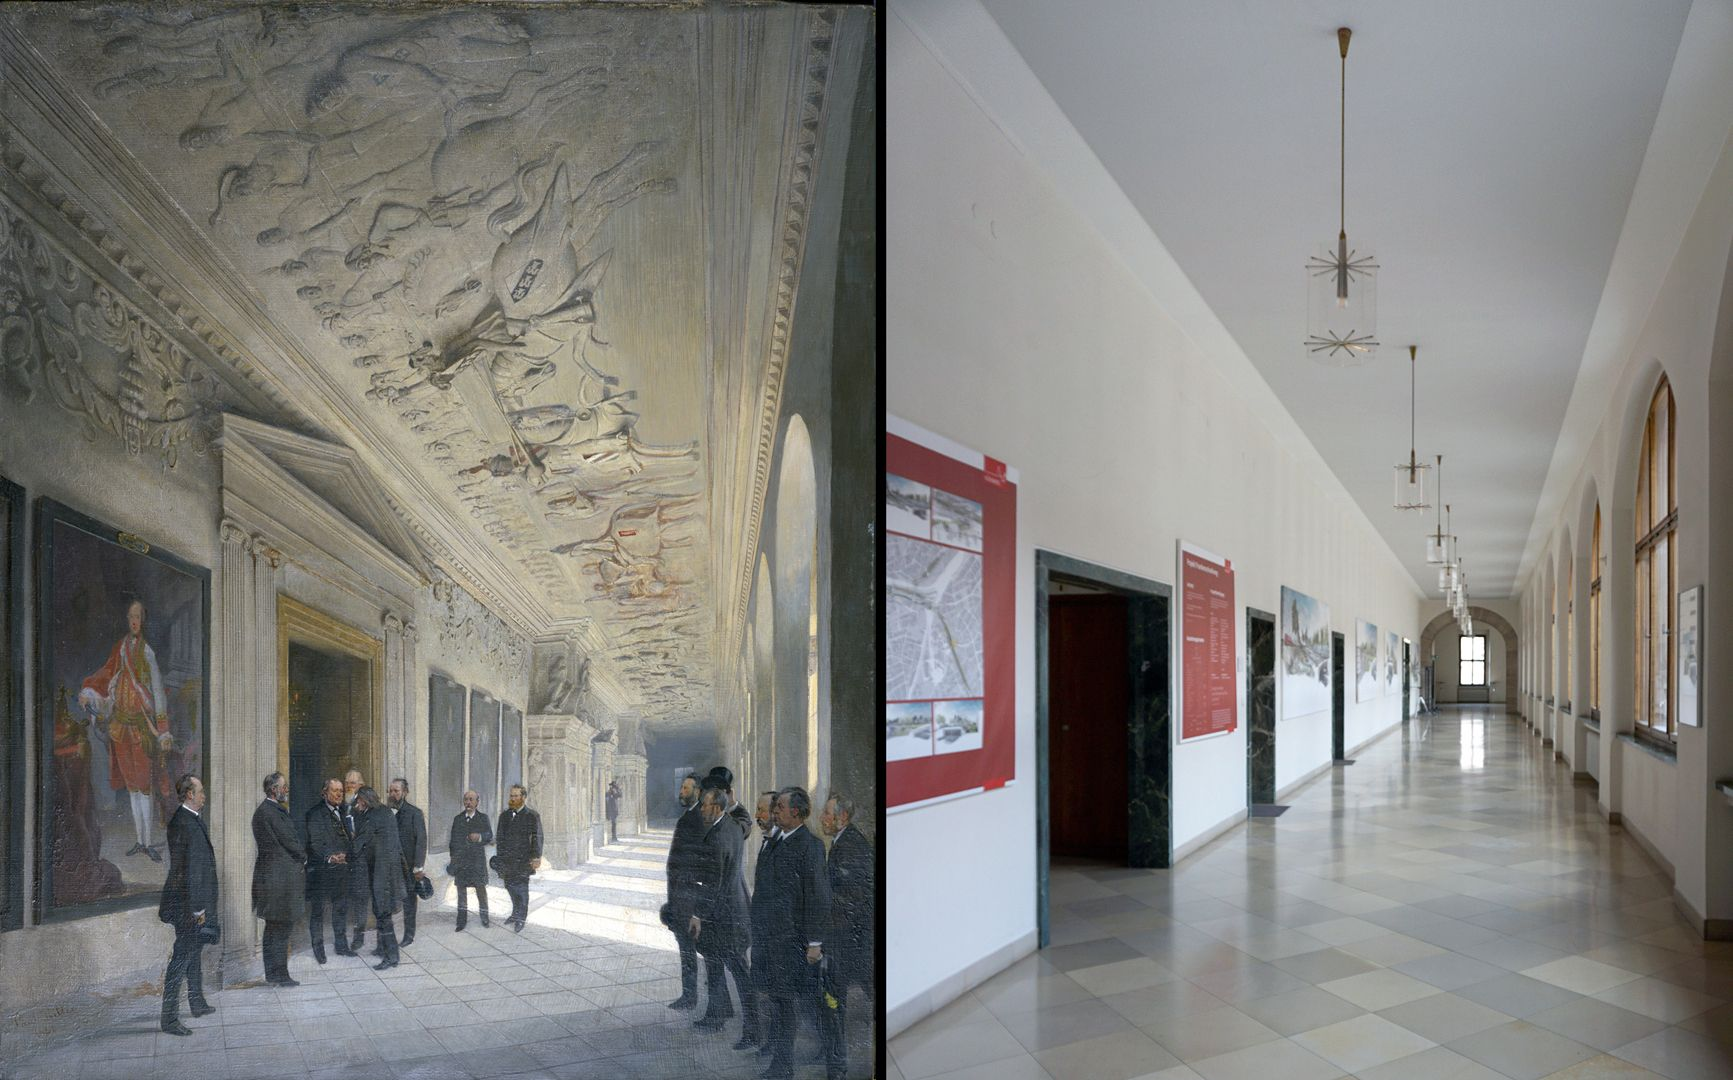 70th birthday Karl Crämer Corridor on the second floor of the town hall / state 1888 and summer 2021